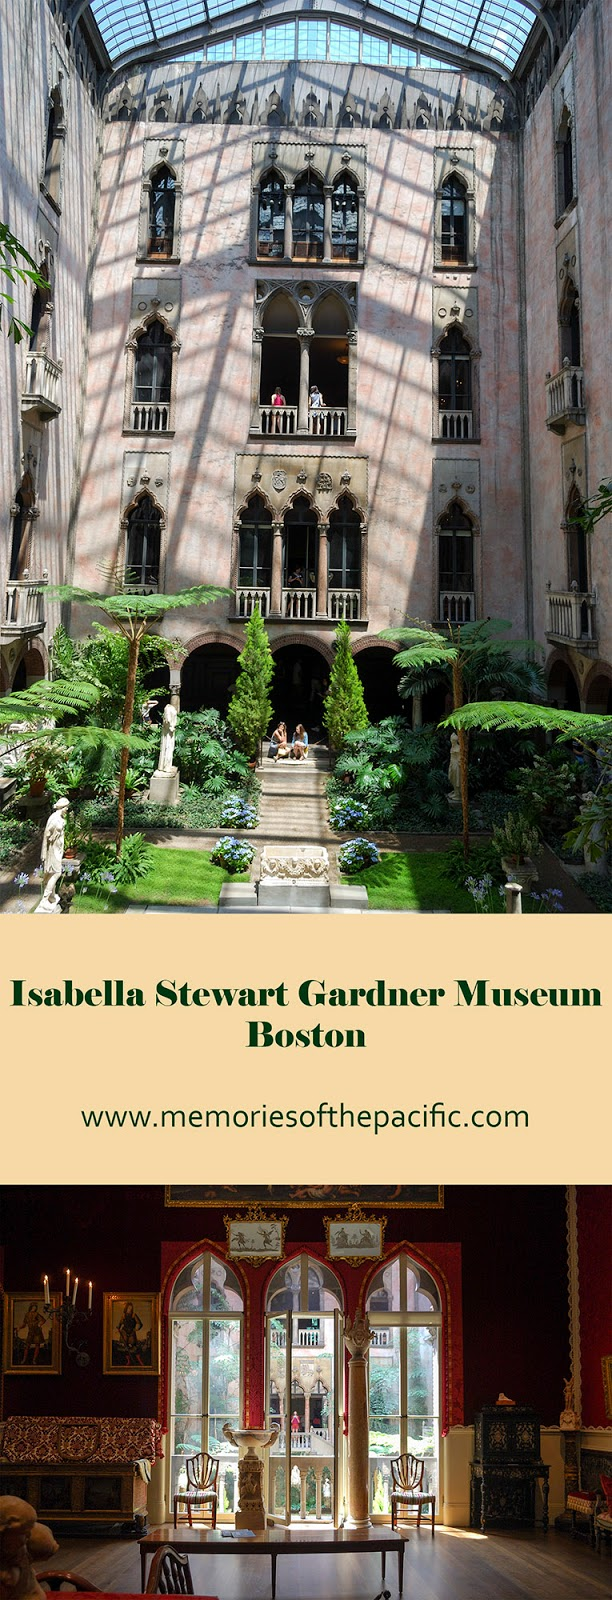 Isabella Stewart Gardner Museum Boston Venetian style palace art collection